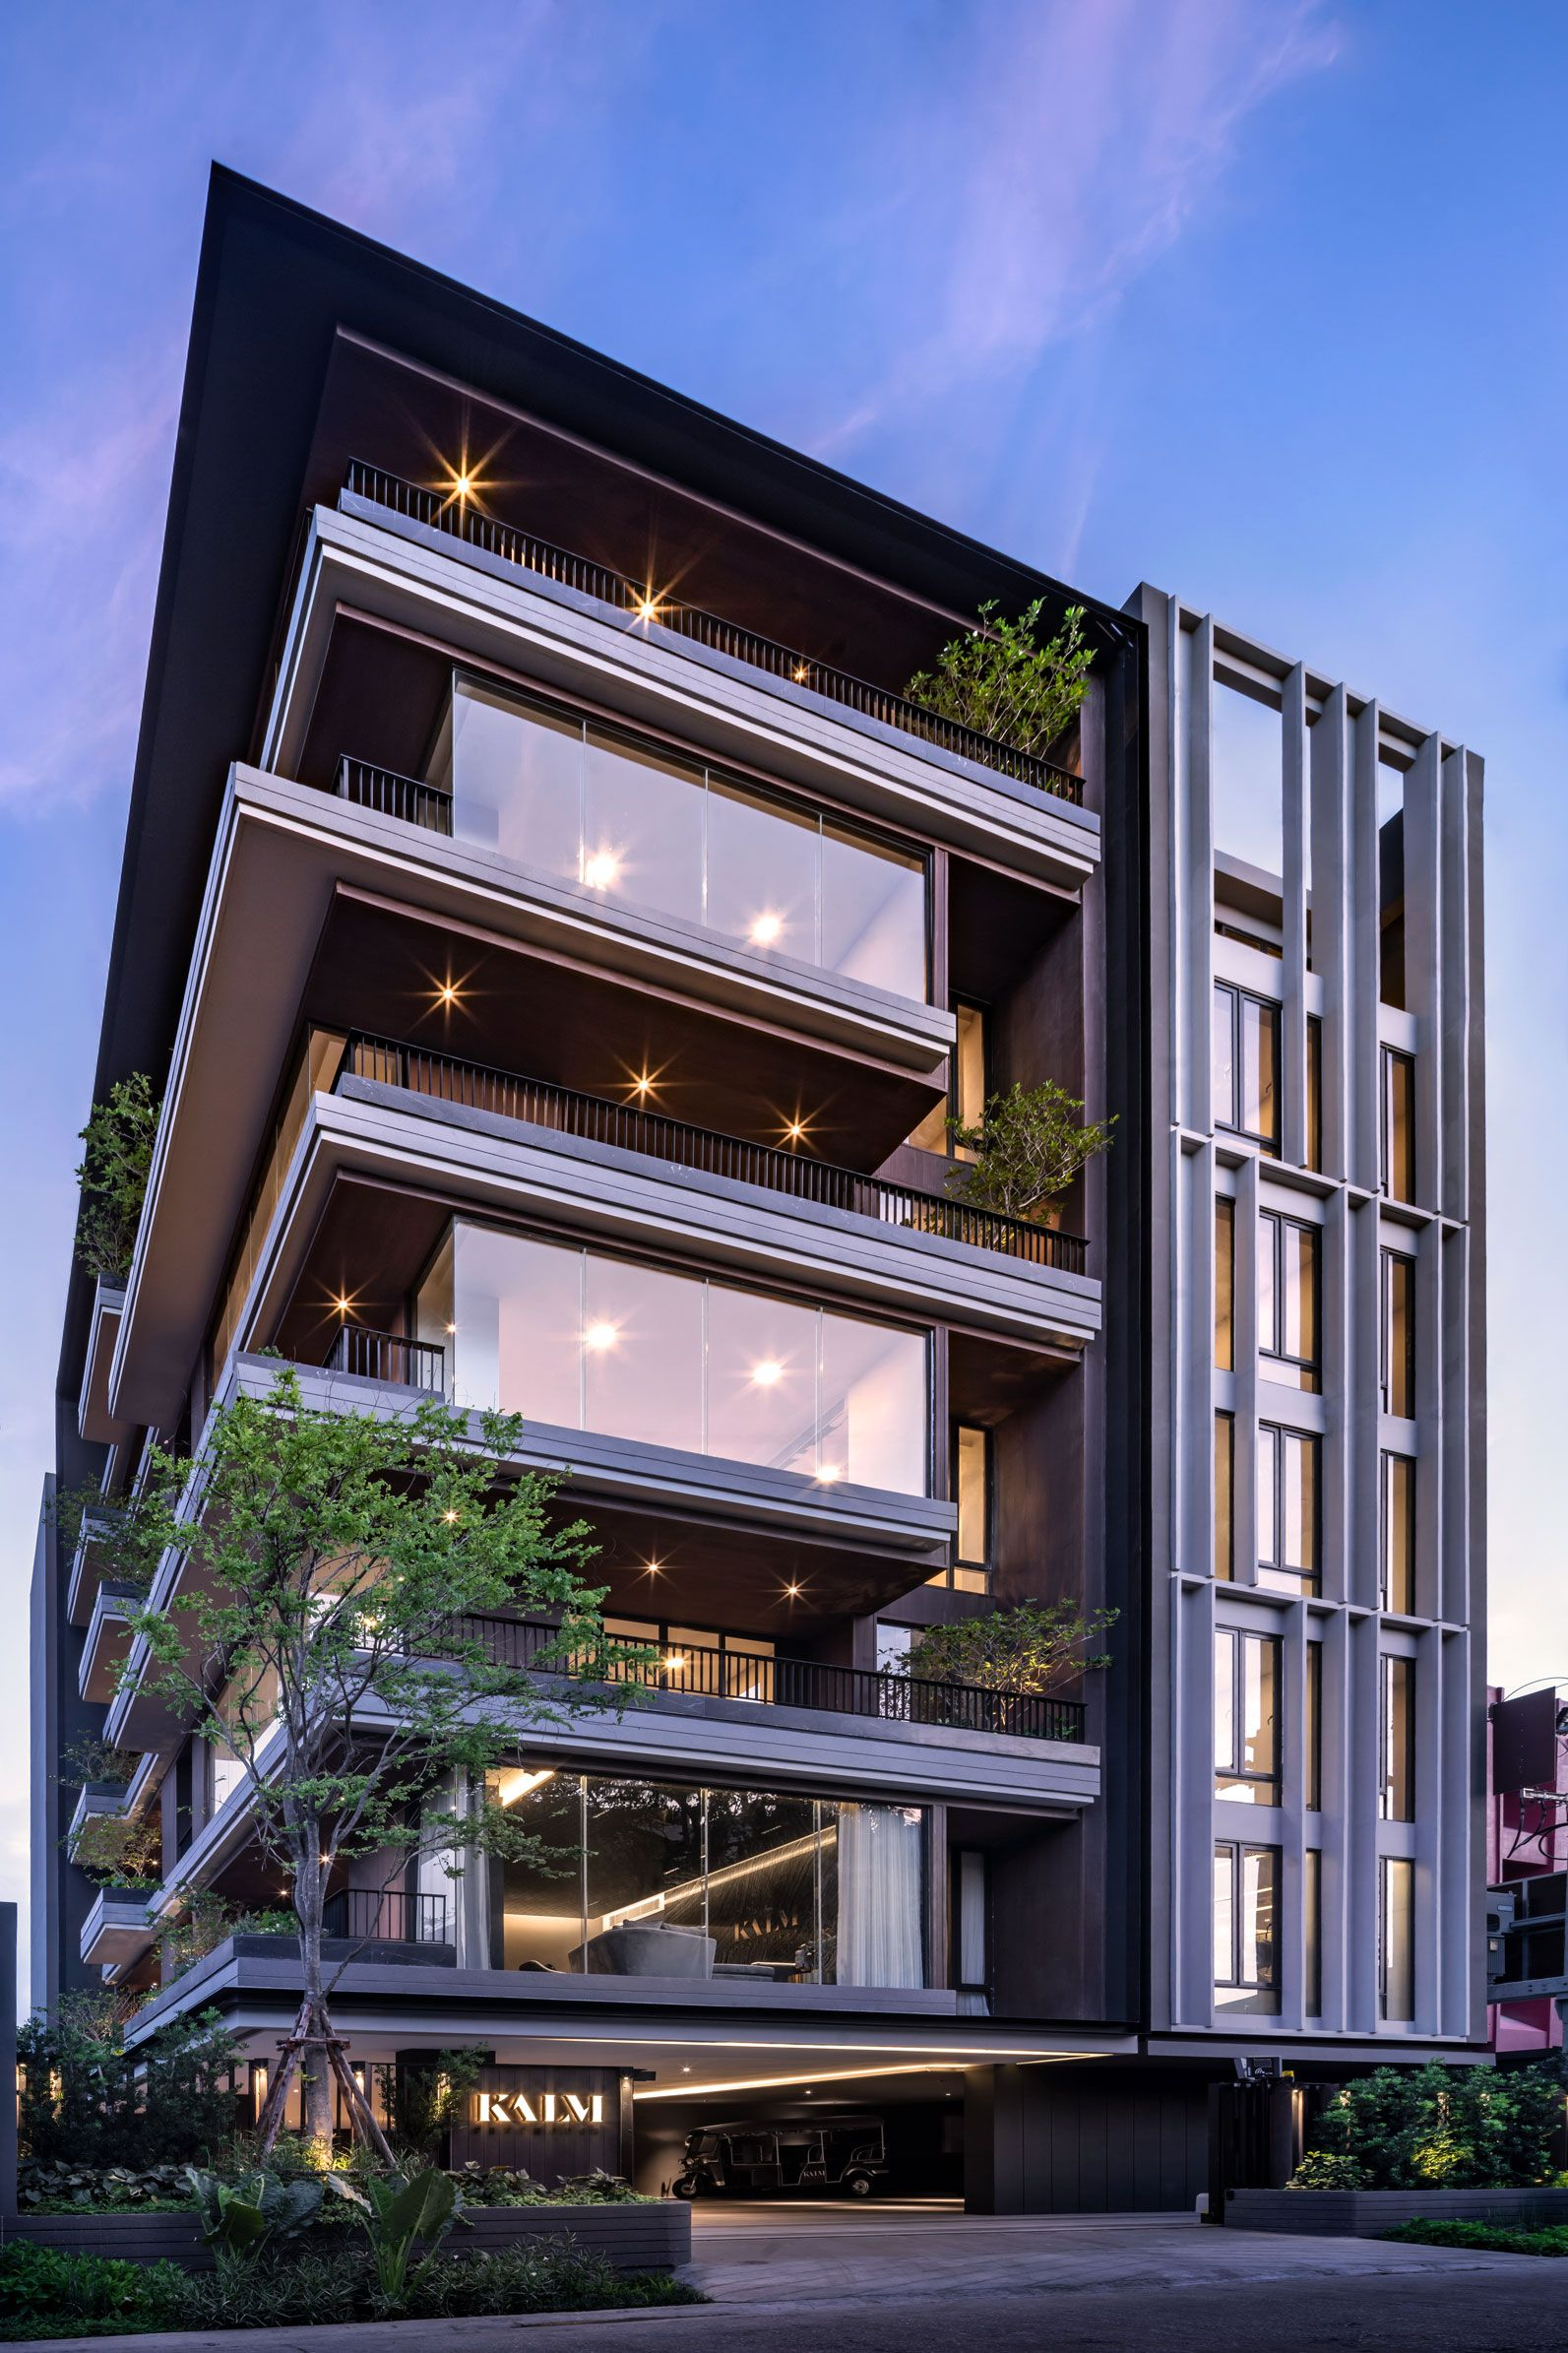 Kalm Penthouse Facade Architecture Design Residential Building